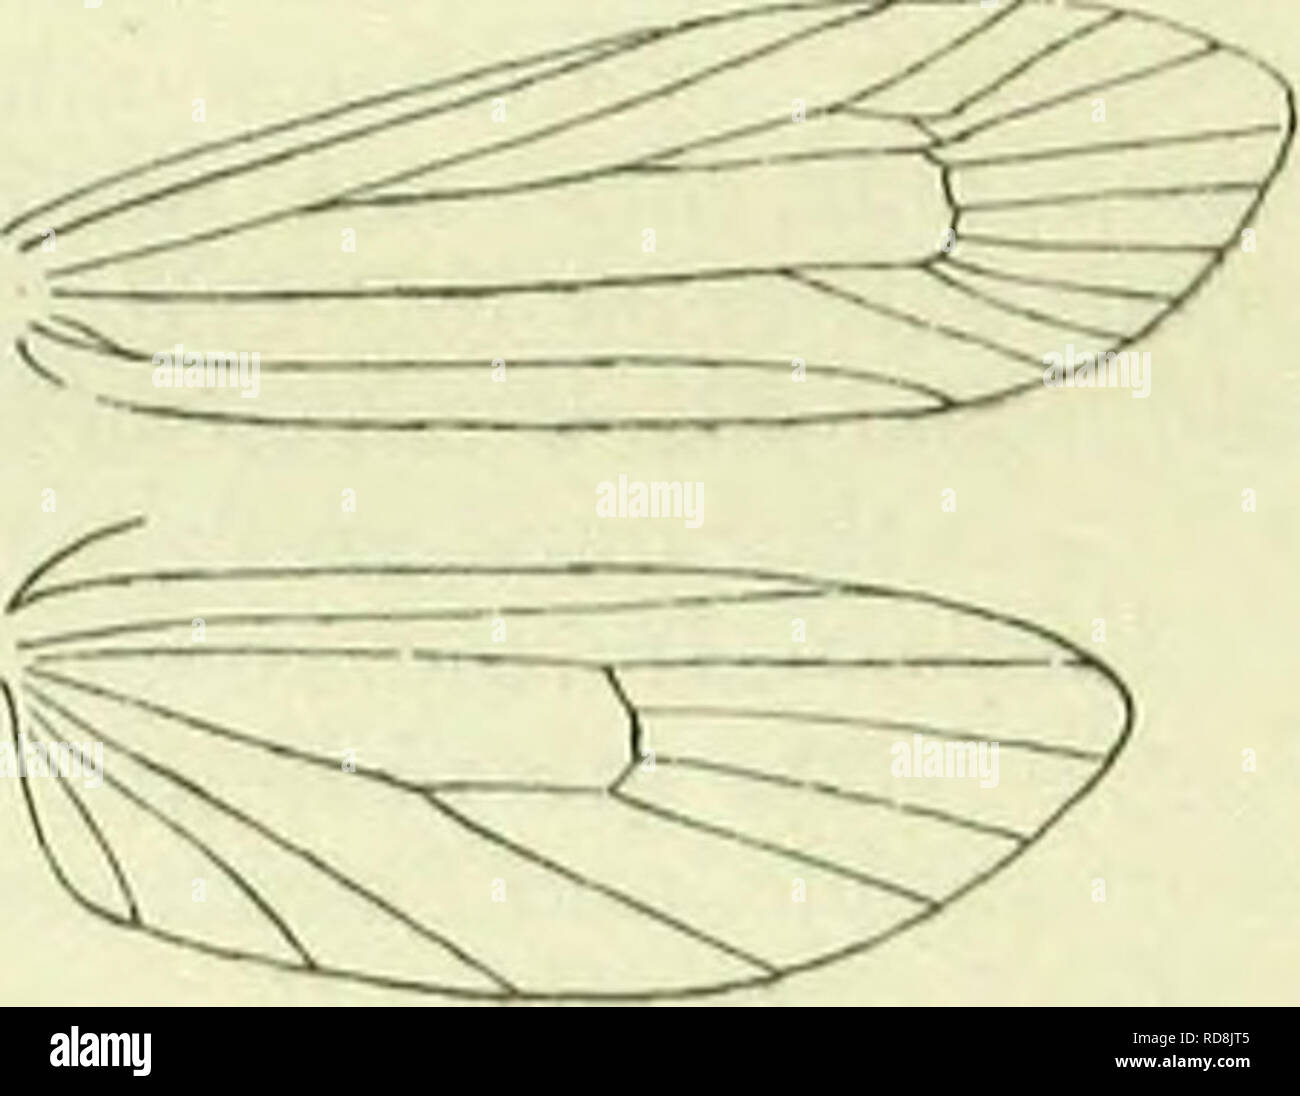 . A handbook of British lepidoptera. Lepidoptera. prays] PLUTELLIDAE § ; some irregular blackish marks towards termen ; sometimes the whole wing is unicolorous dark fuscous. Hindwings rather dark grey. Britain to Caledonian Canal, Ireland, common ; C. Europe, Asia Minor; (i, 7. Larva greenish, marbled with red-brown above ; dorsal line deep green ; head pale brown, dark-spotted ; 2 with two black spots : when young mining in leaves, after- wards in bark of shoots, ultimately in spun shoots of ash ; 10-5. 3. Yponomedta, Latr. Head smooth. Antennae |, in $ filiform, minutely ciliated, basal joi - Stock Image